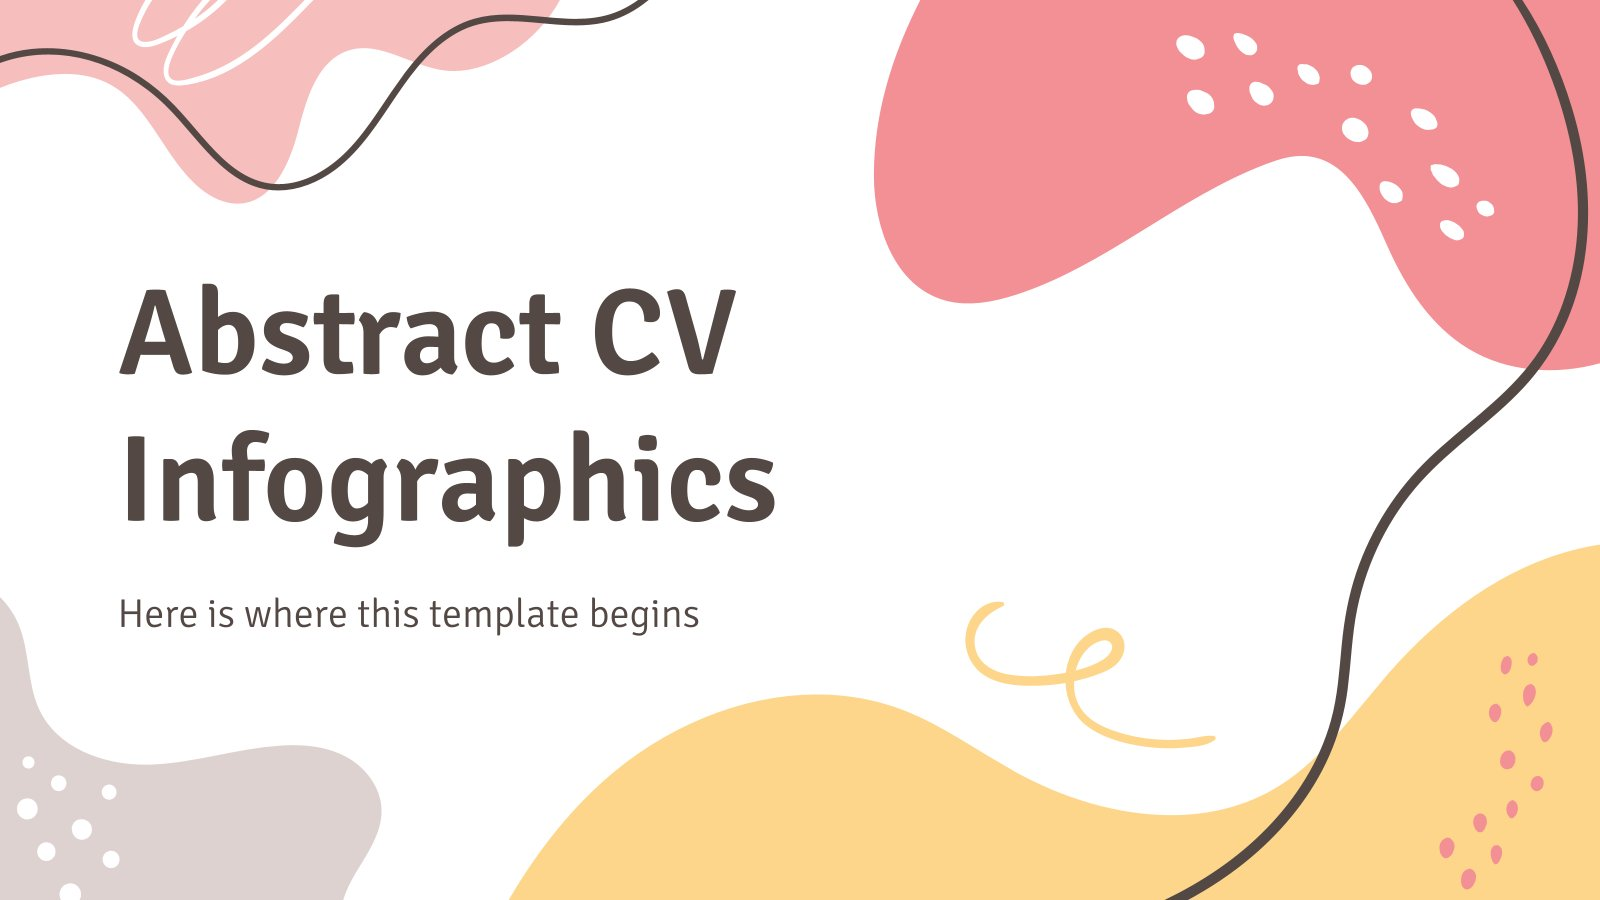 Abstract CV Infographics presentation template